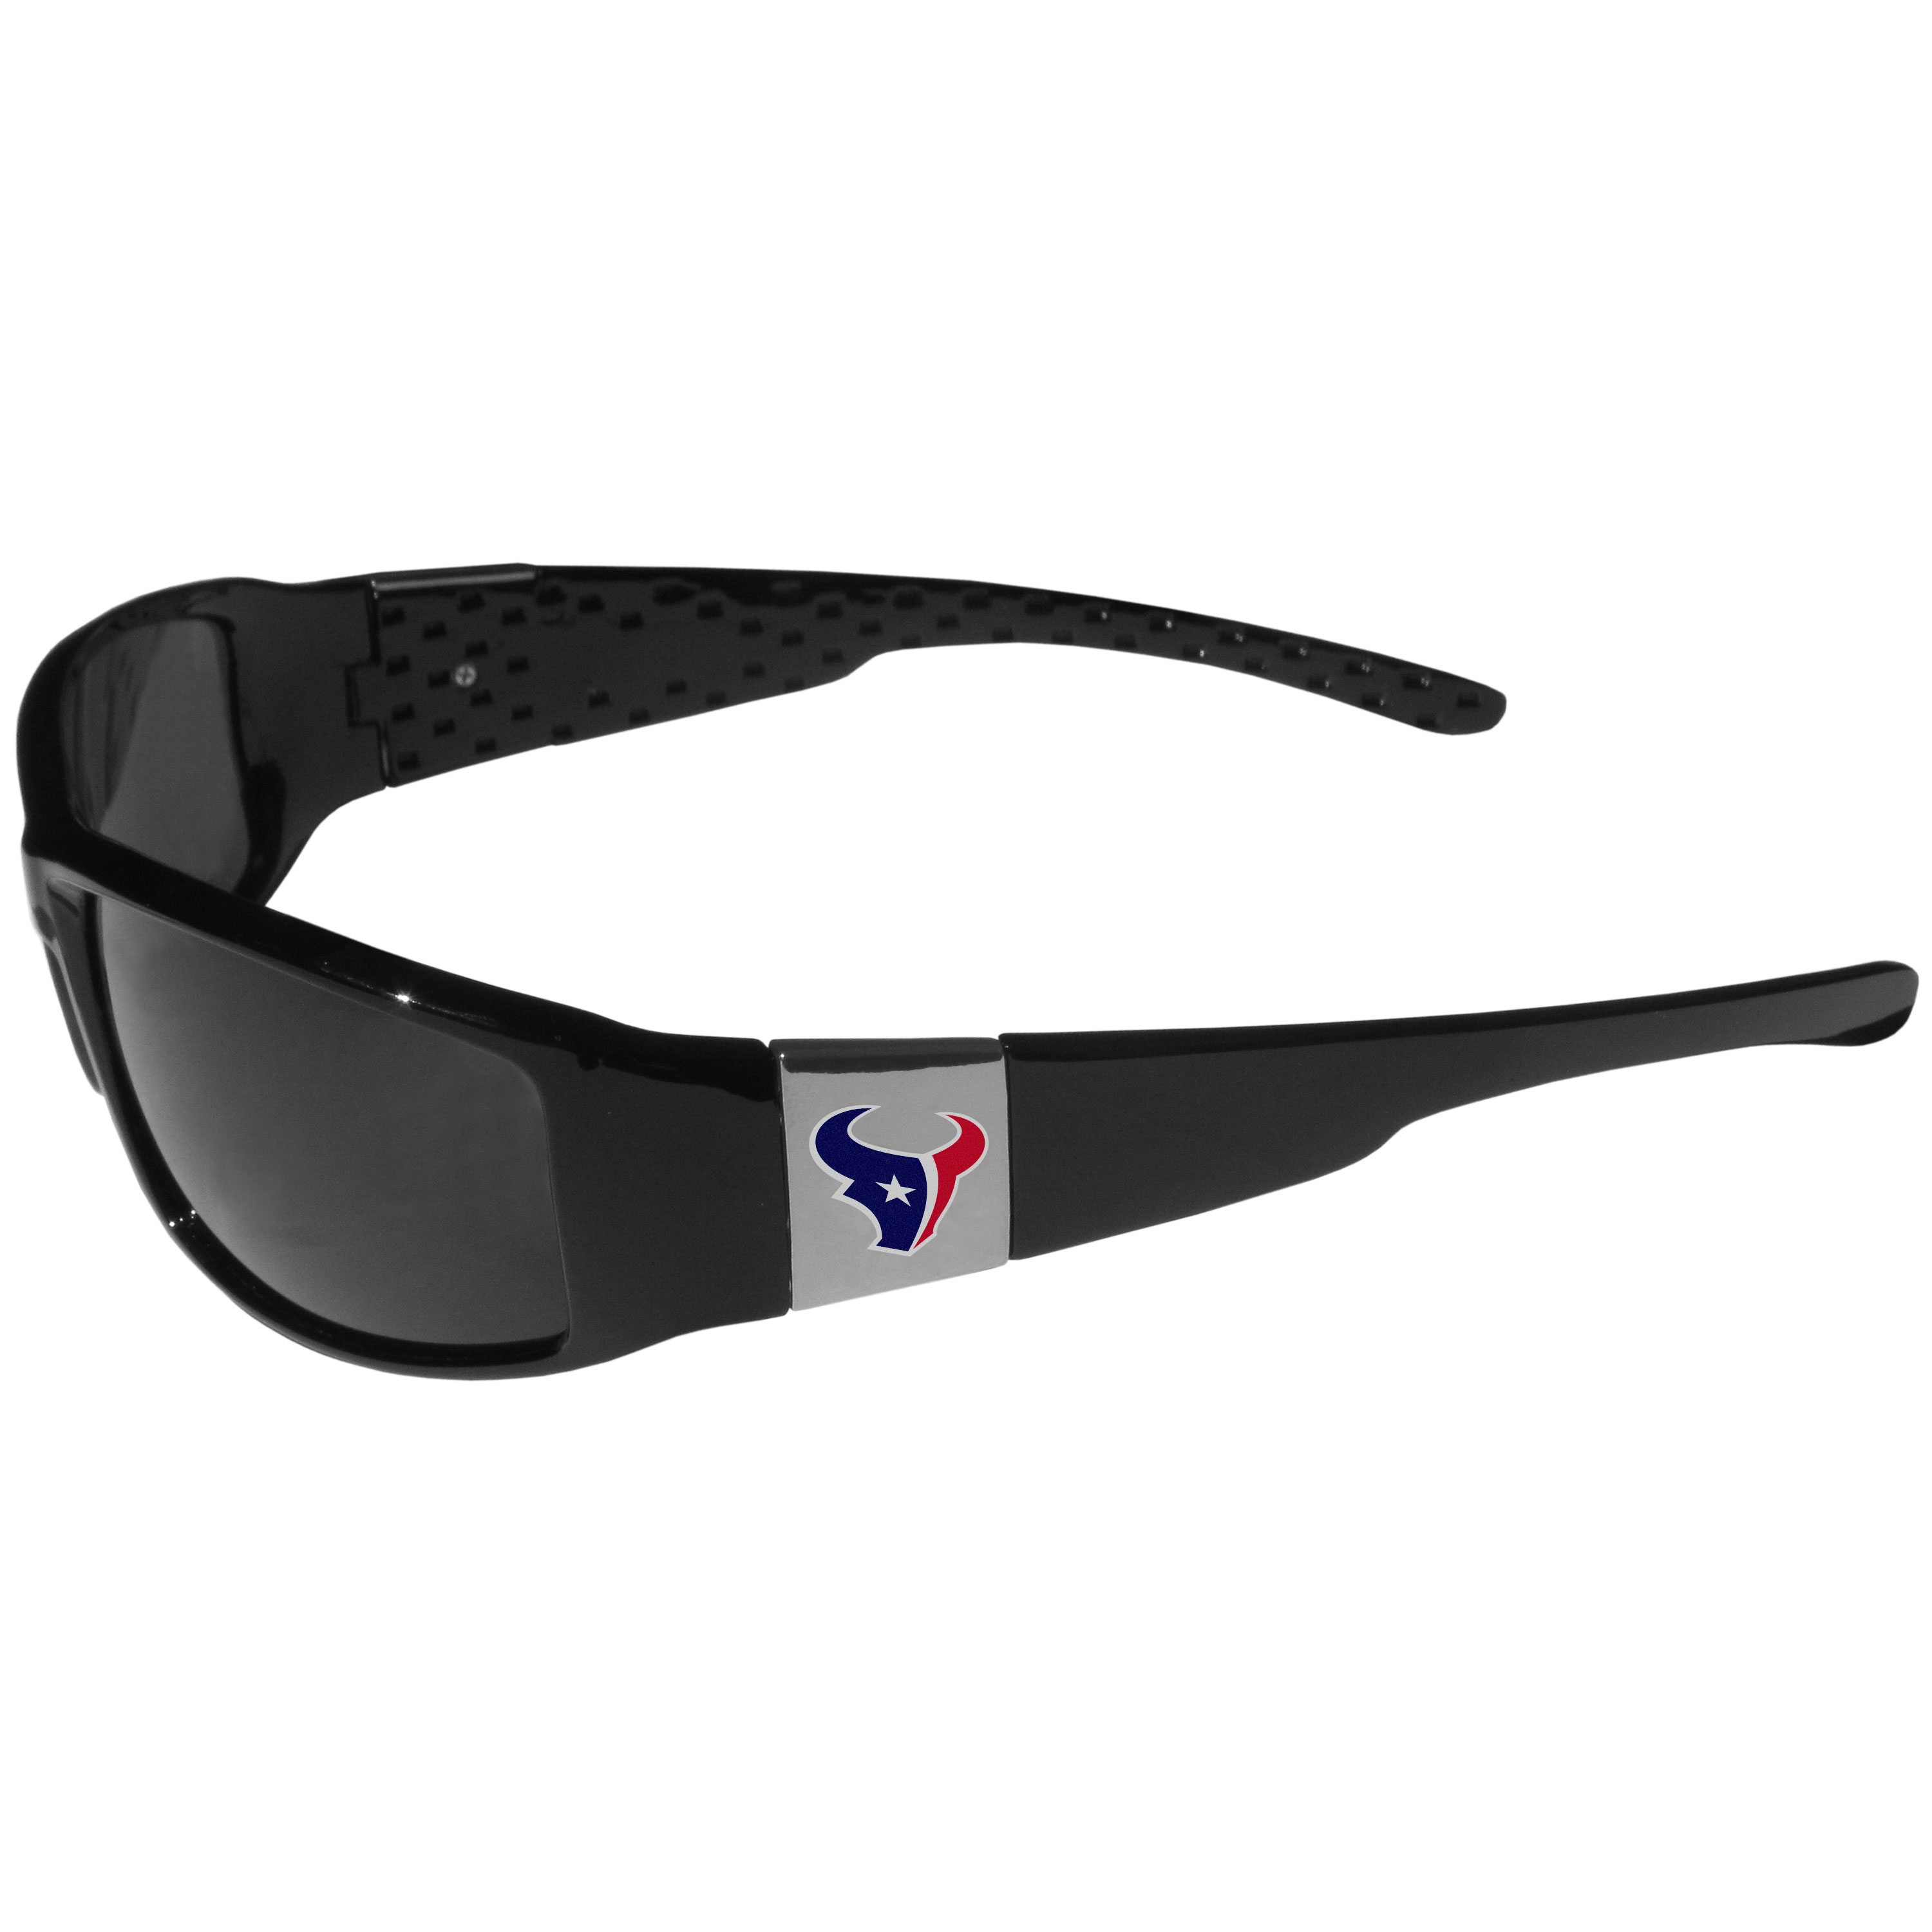 Chrome Wrap Sunglasses